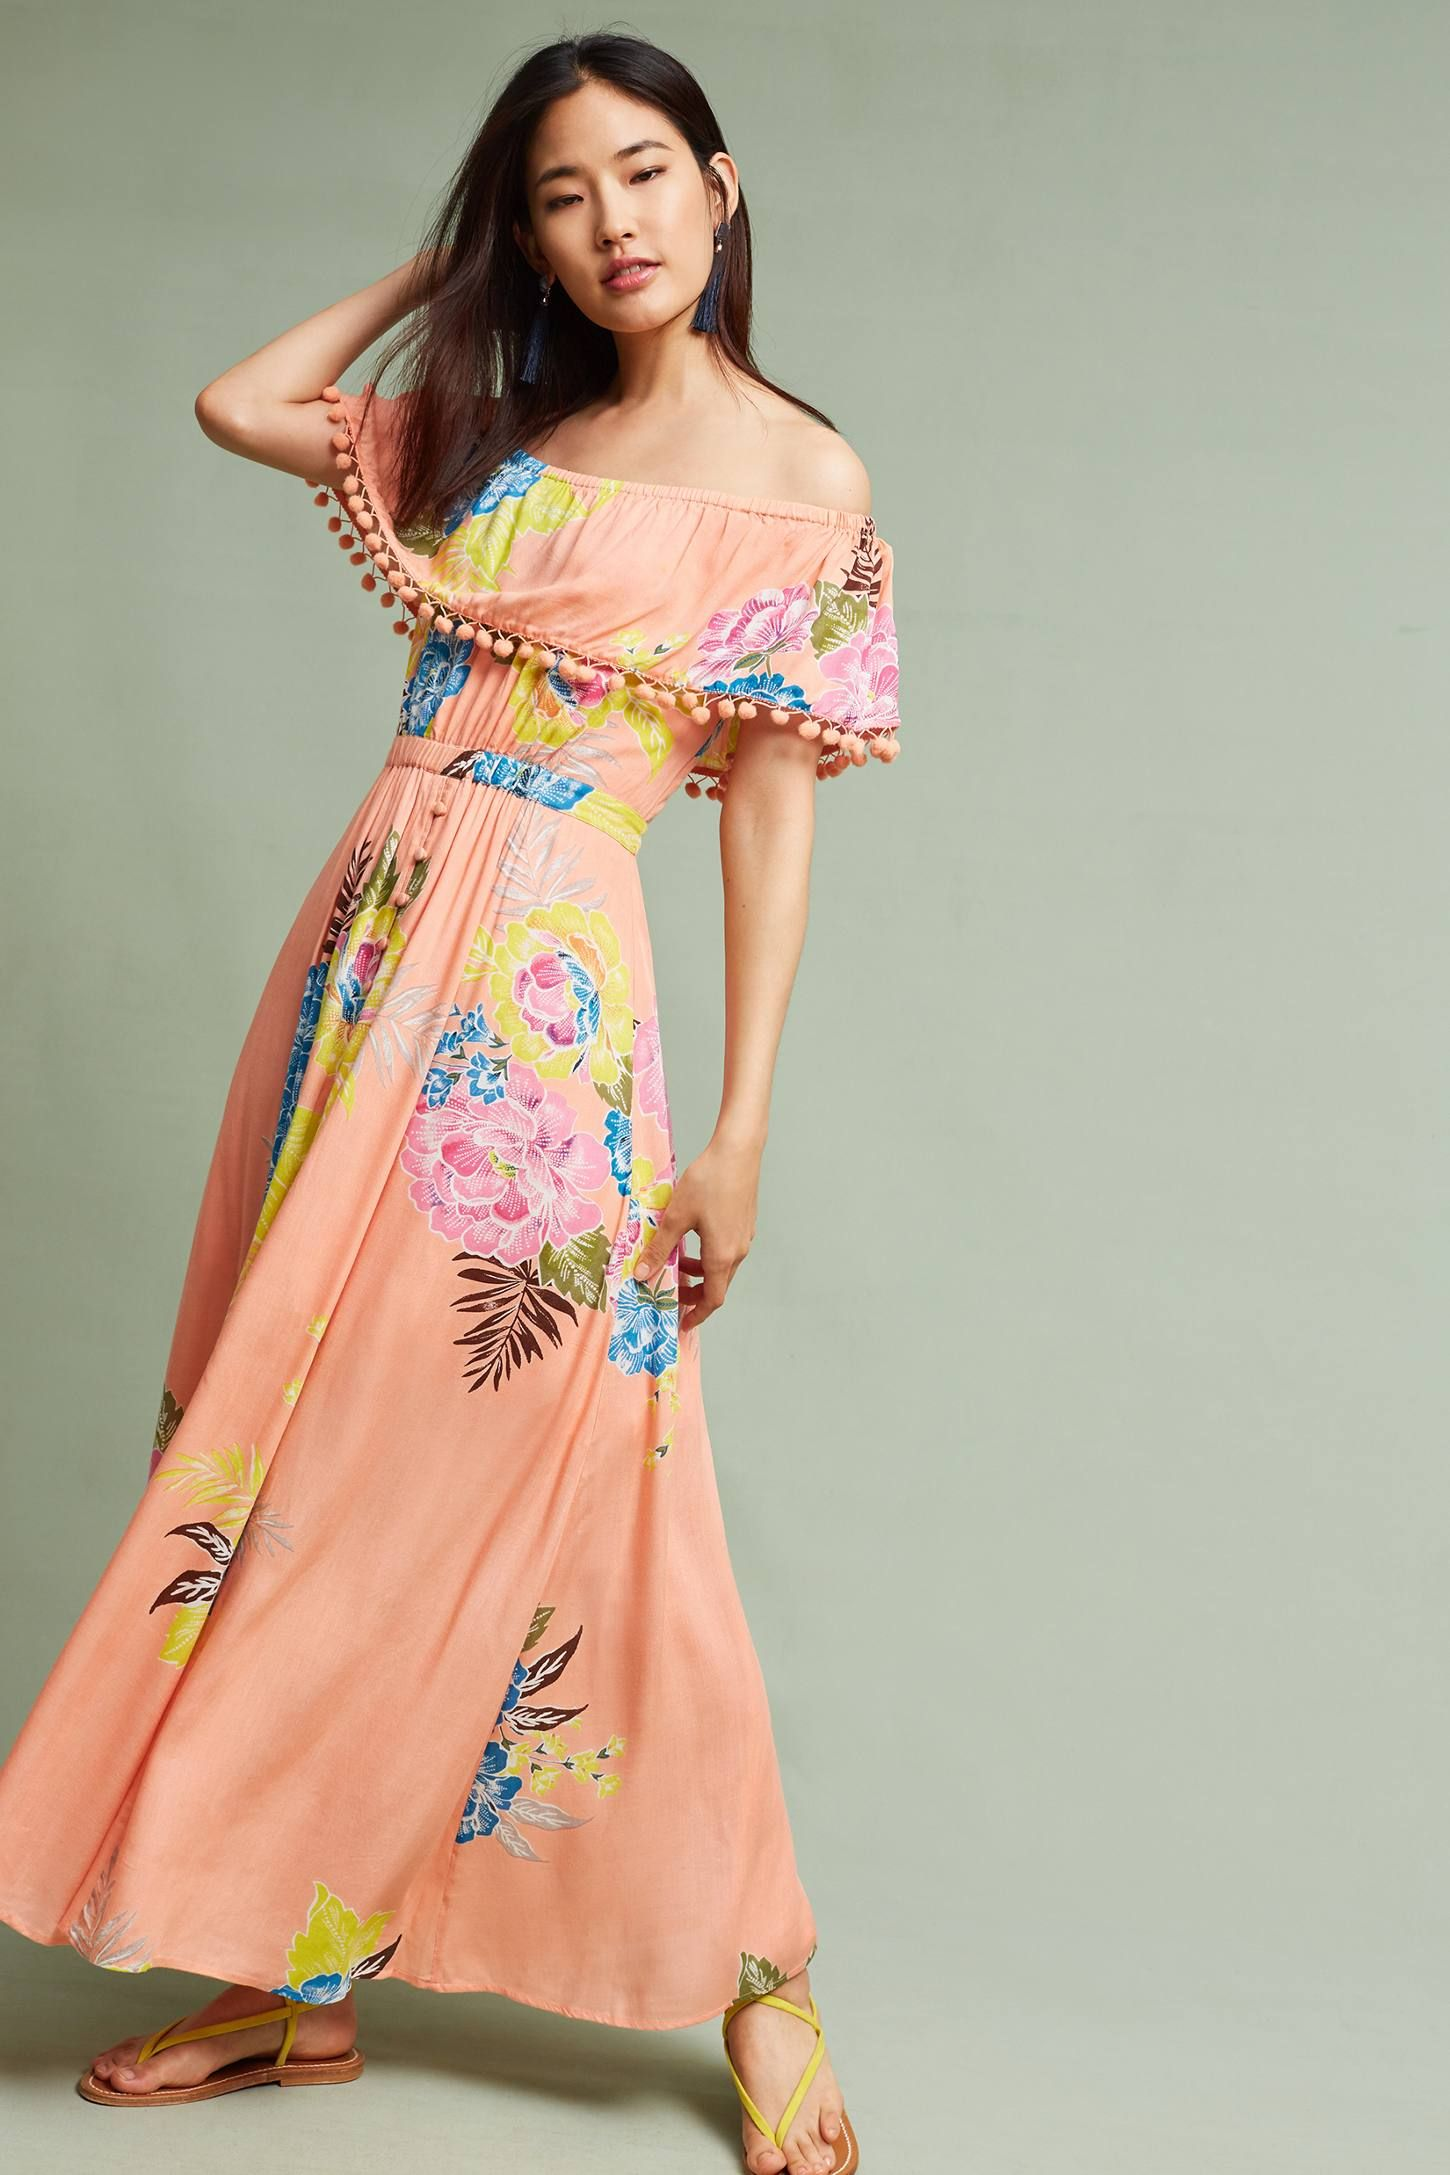 00461d97b91c Shop the Pom Pom Off-The-Shoulder Maxi Dress and more Anthropologie at  Anthropologie today. Read customer reviews, discover product details and  more.